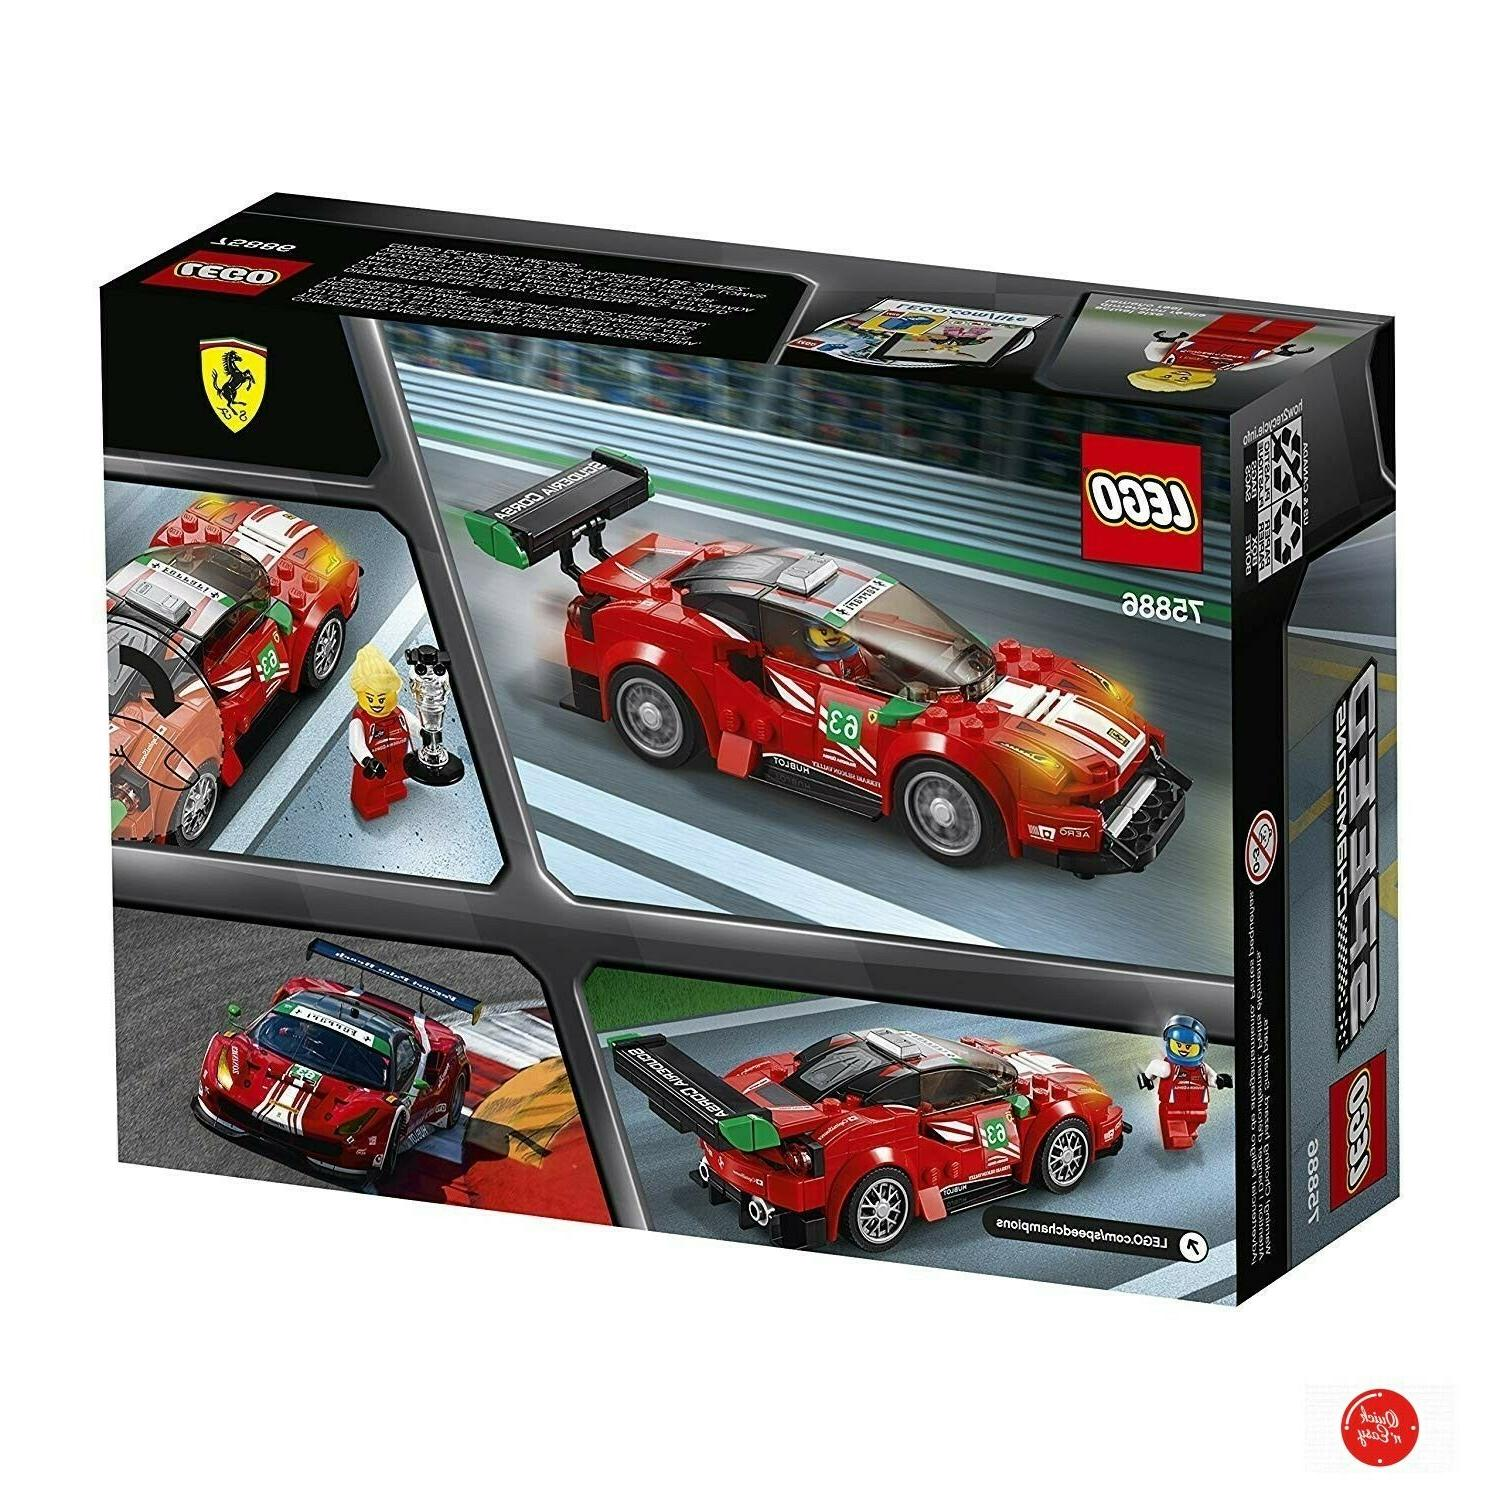 7 Gifts 8-11 Car For Kids